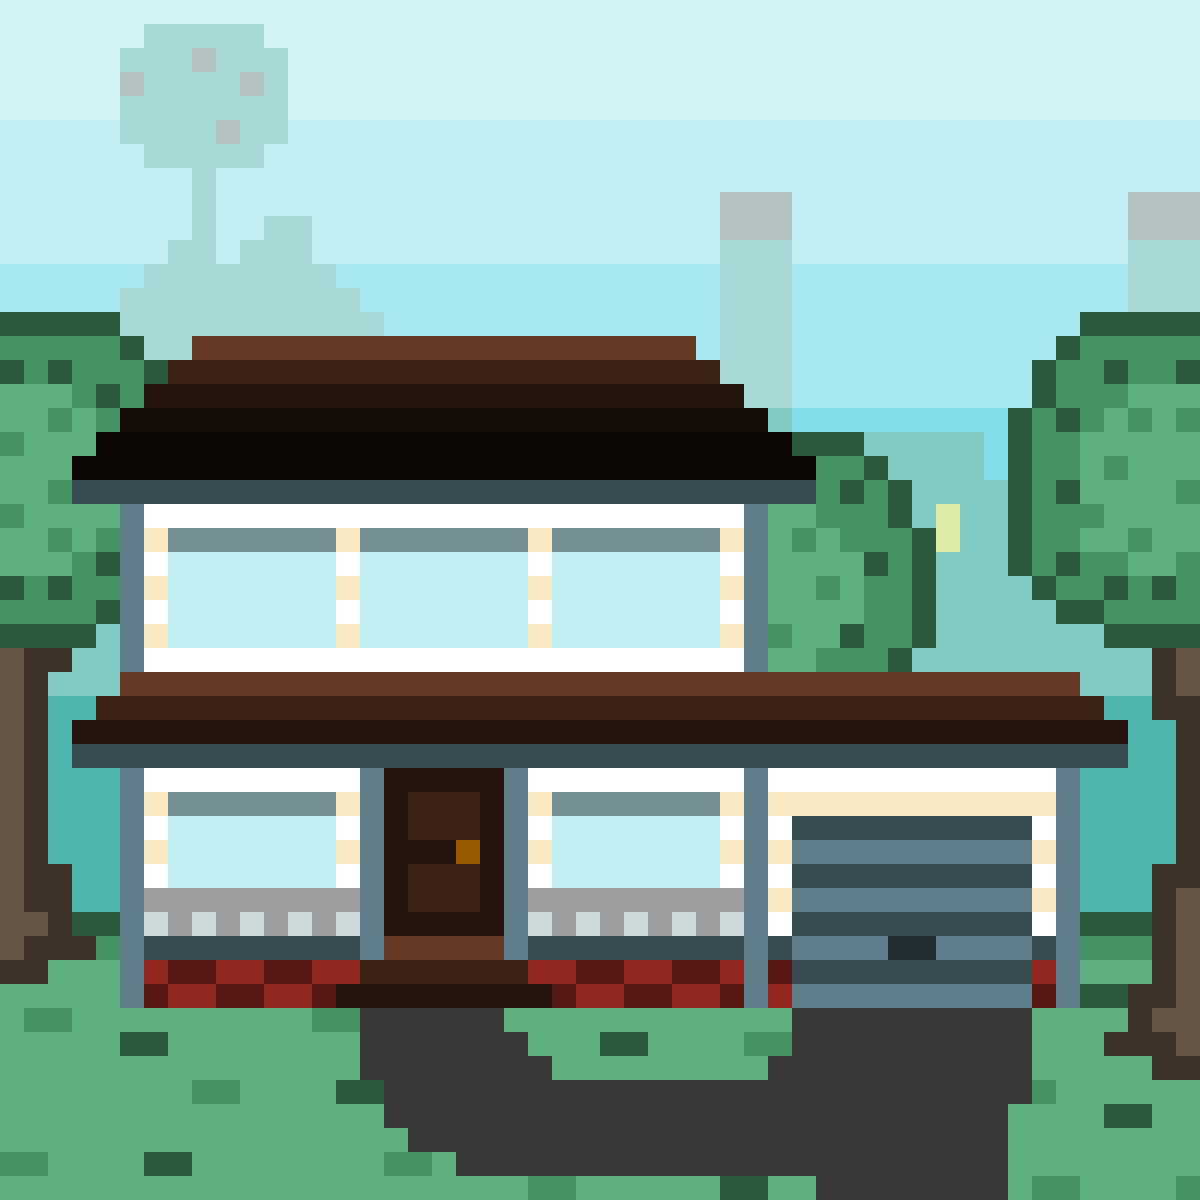 Suburban house. by Cookielicious